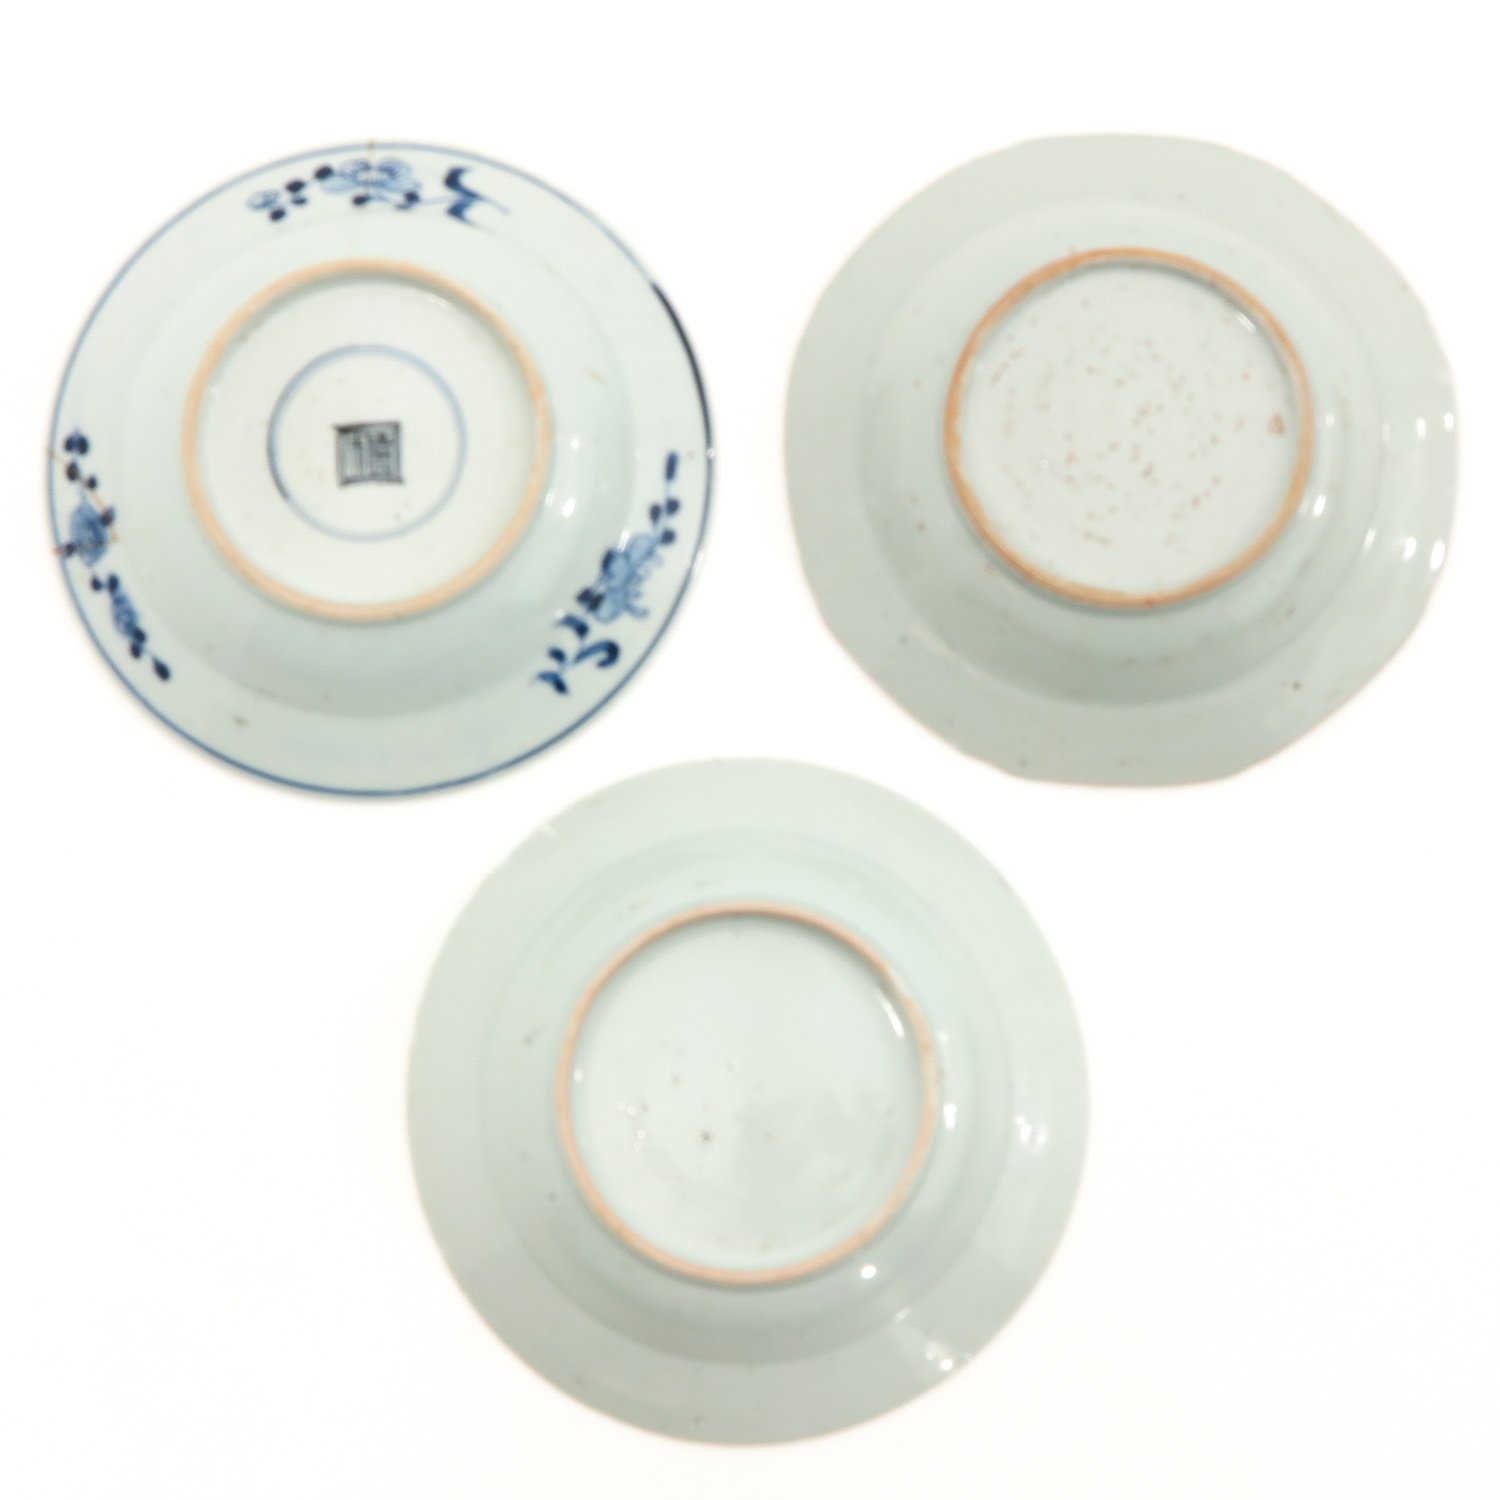 A Collection of 9 Blue and White Plates - Image 4 of 10